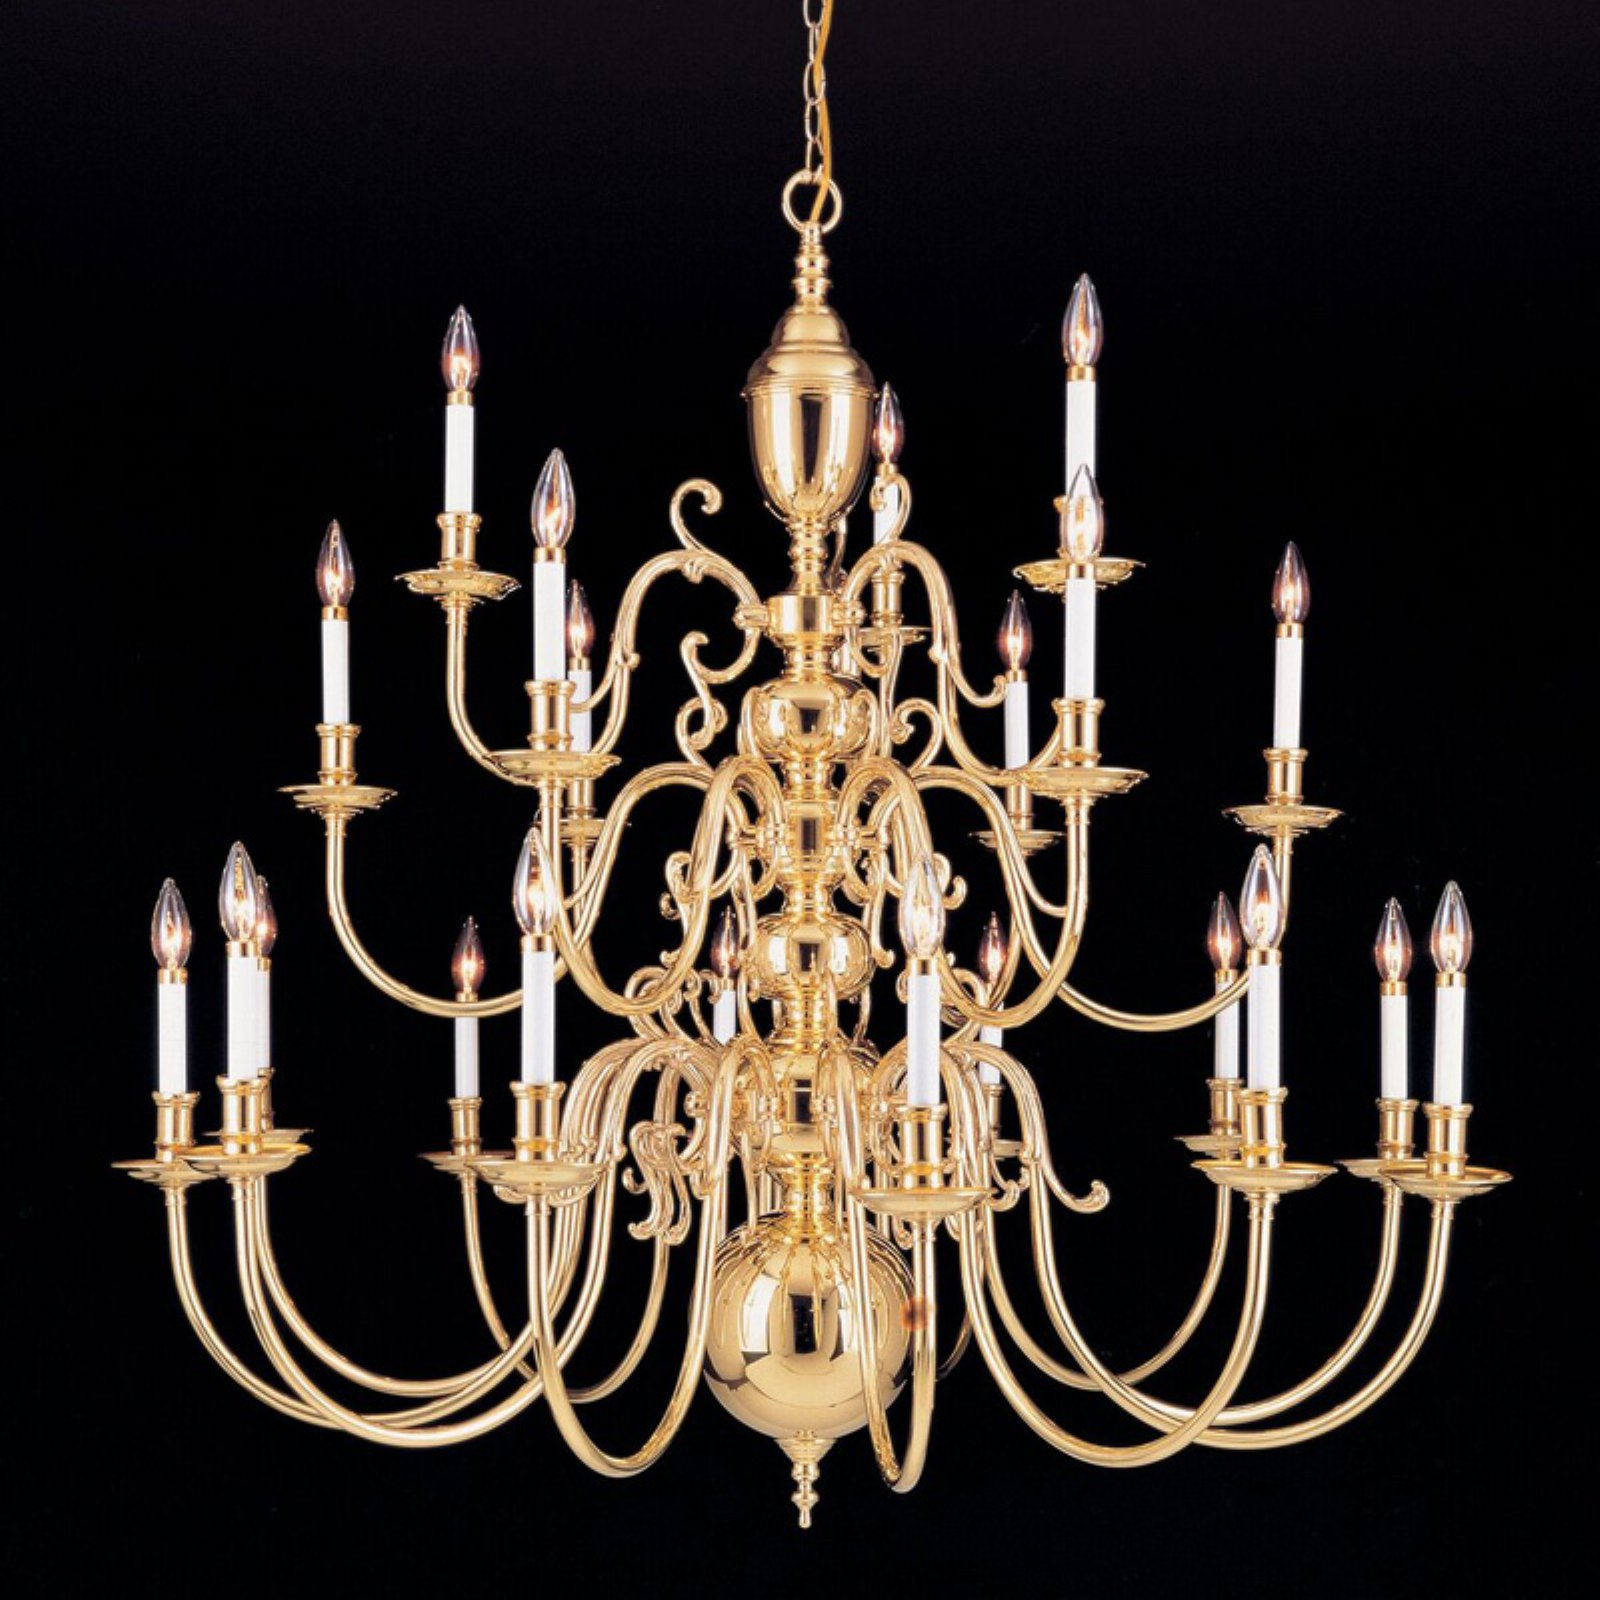 Crystorama 355-96-PB Chandelier Polished Brass by Crystorama